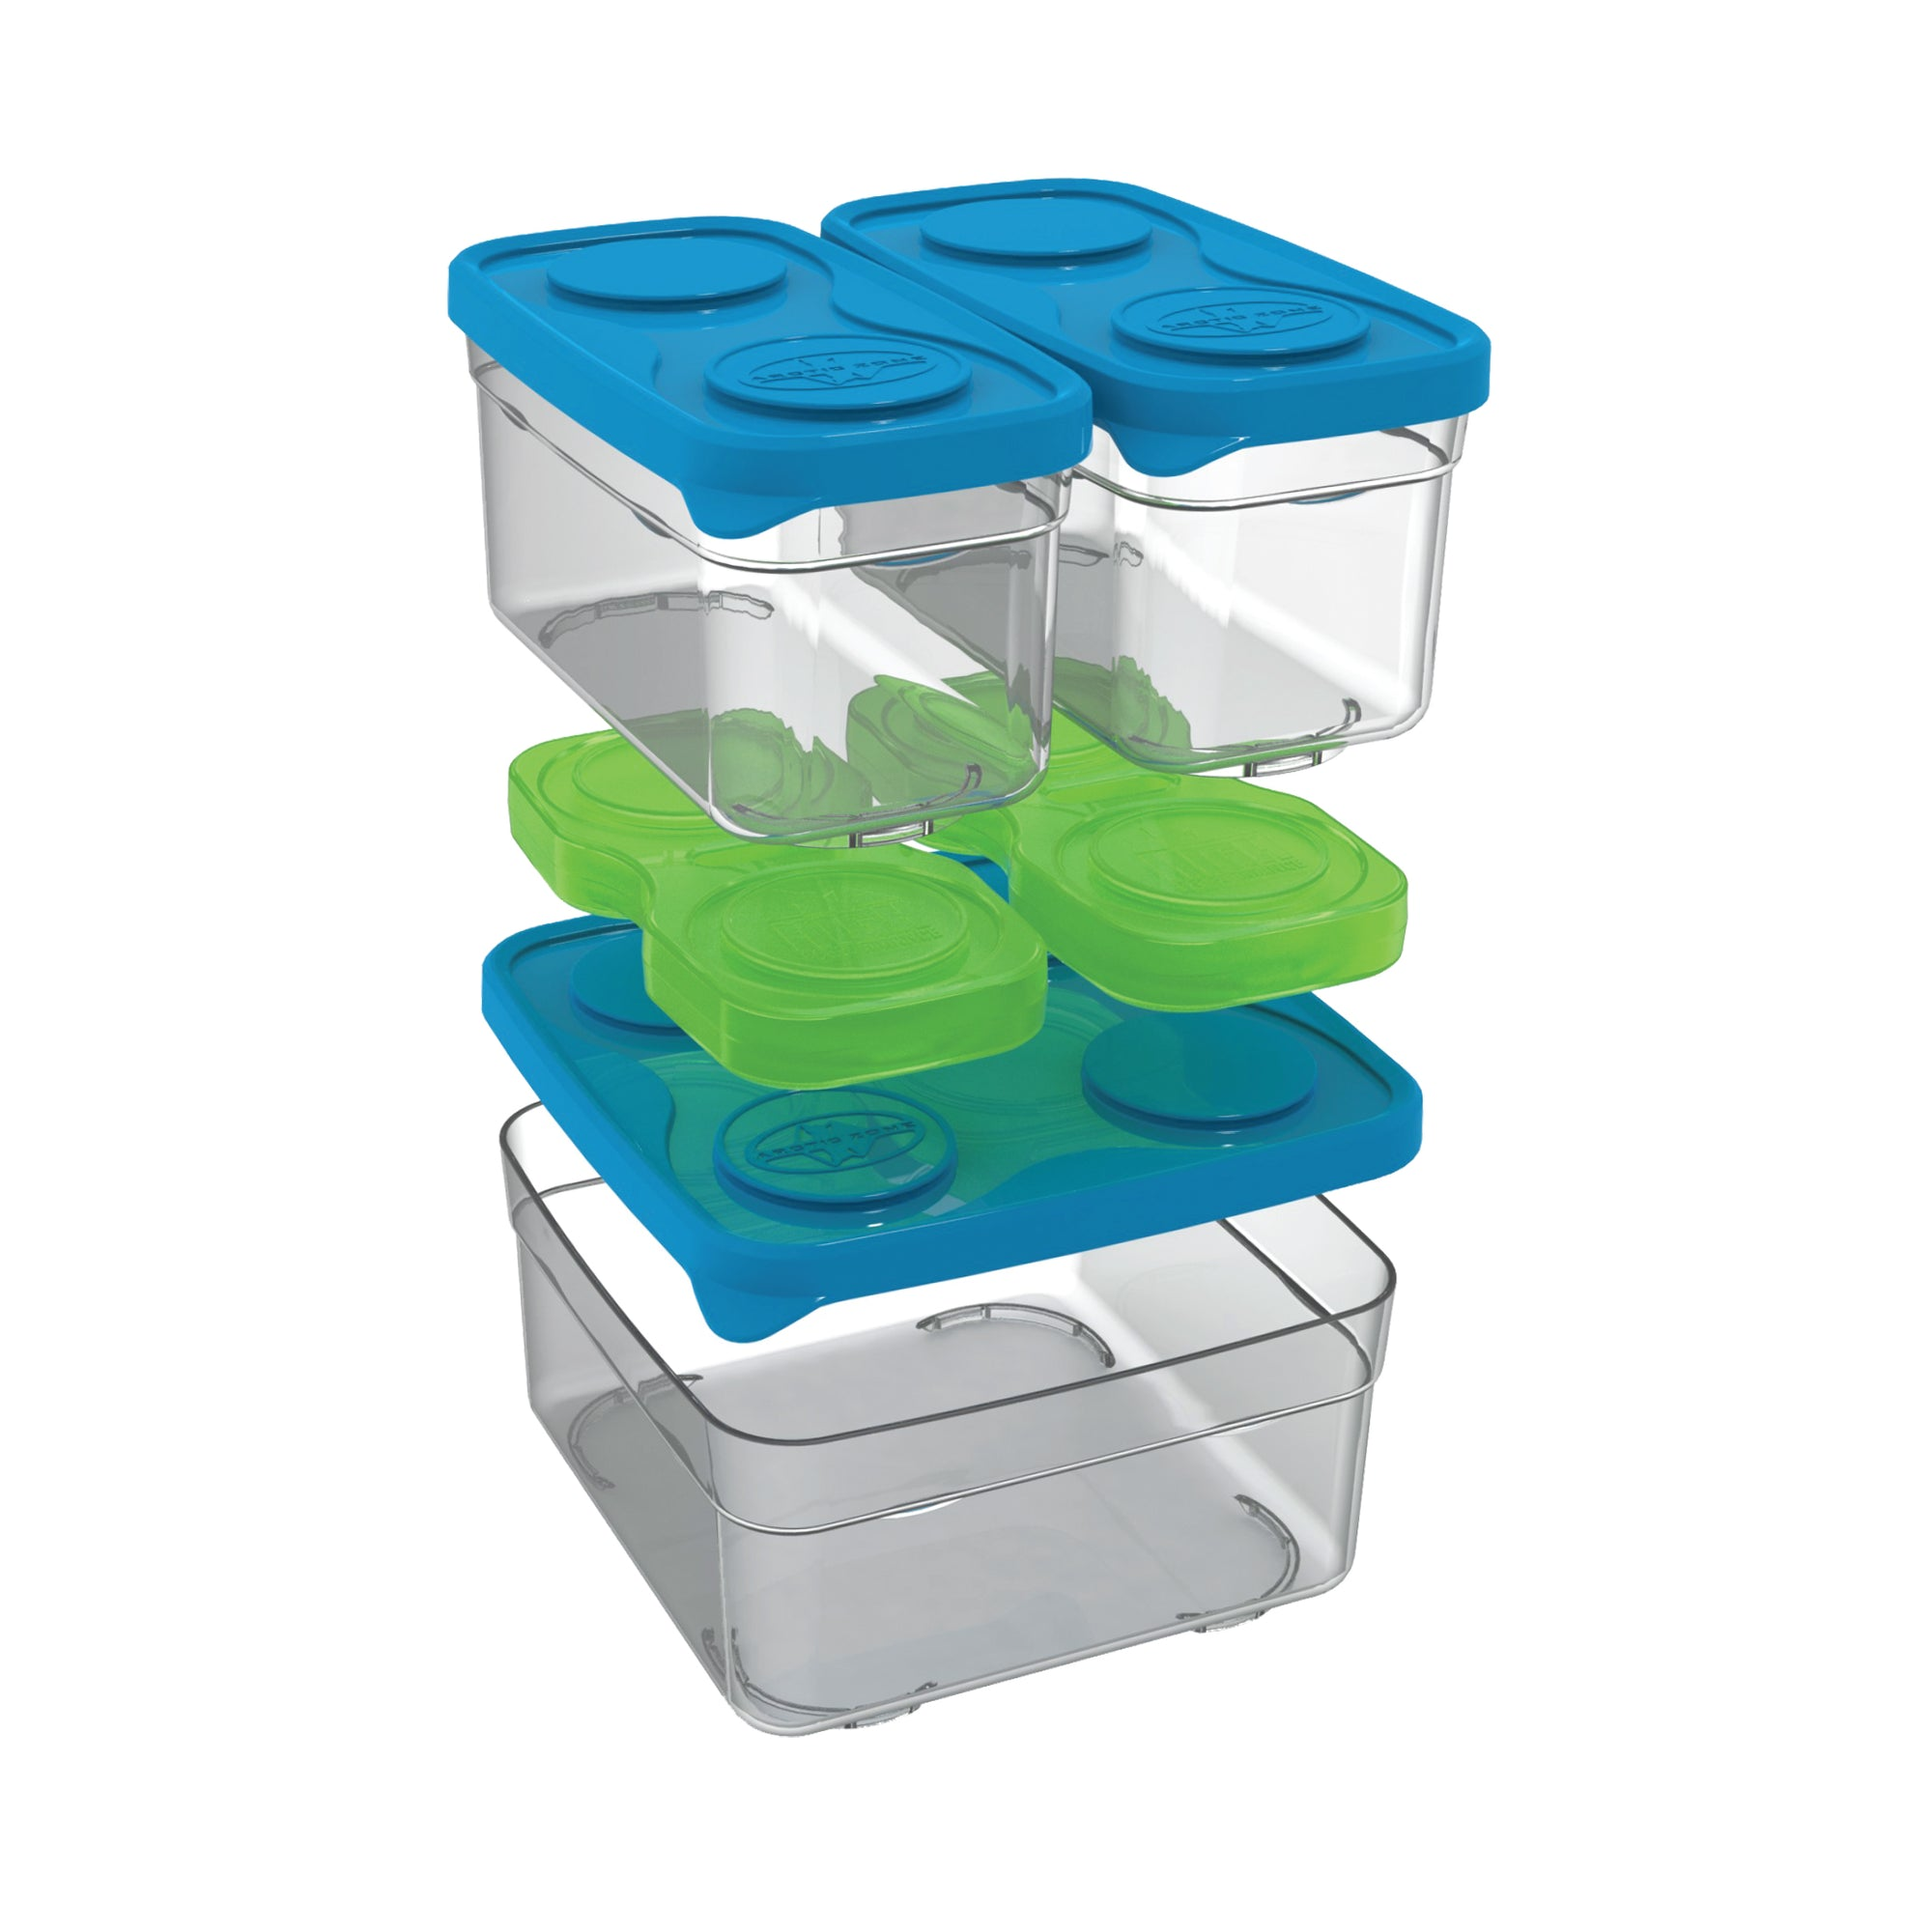 Interlockers 8 Piece Sandwich Set